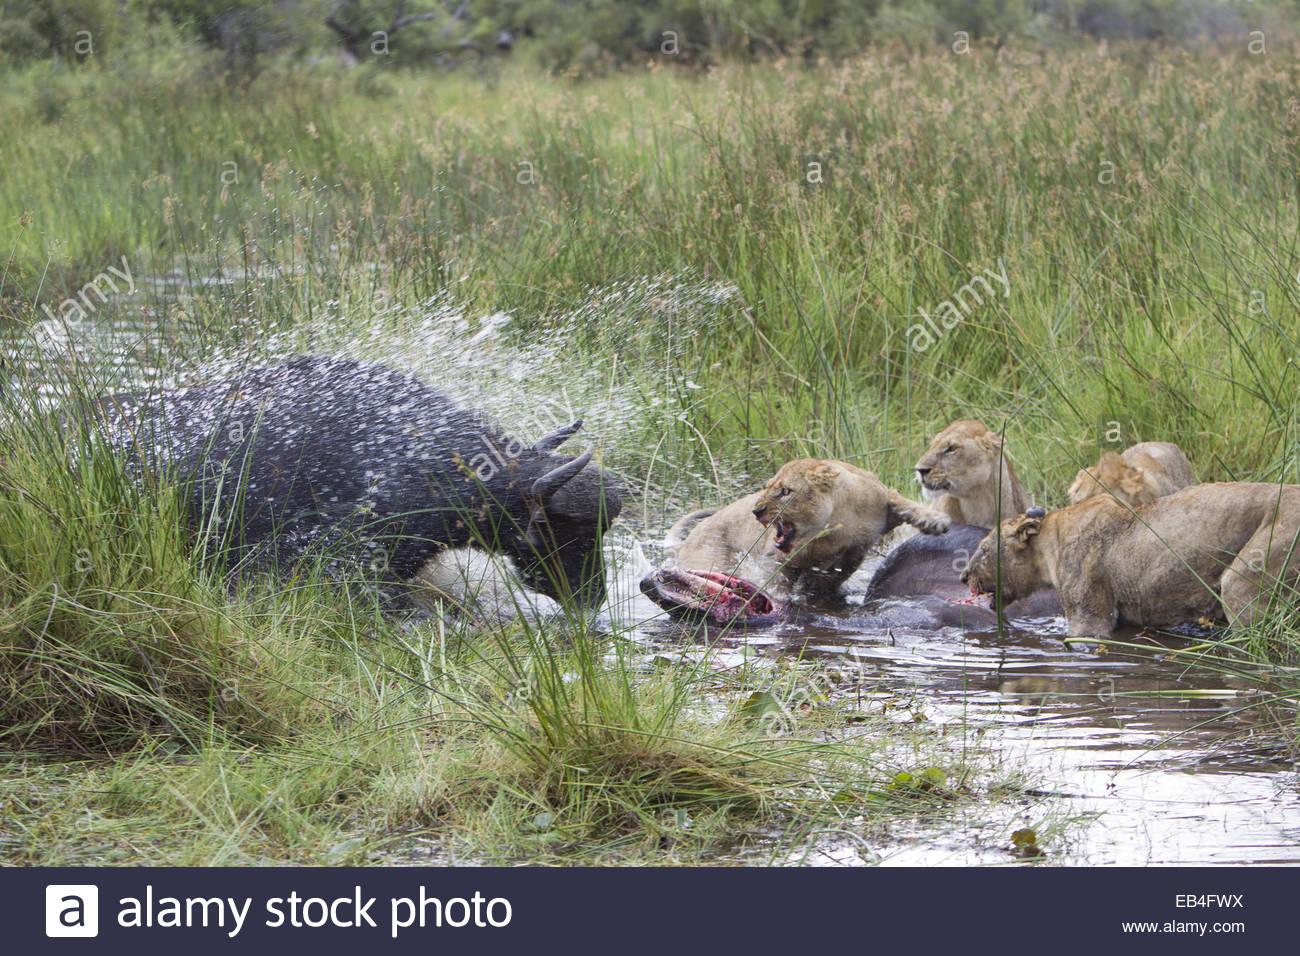 A Cape buffalo, Syncerus caffer, charging a group of African lions, Panthera leo, eating a freshly killed buffalo. - Stock Image